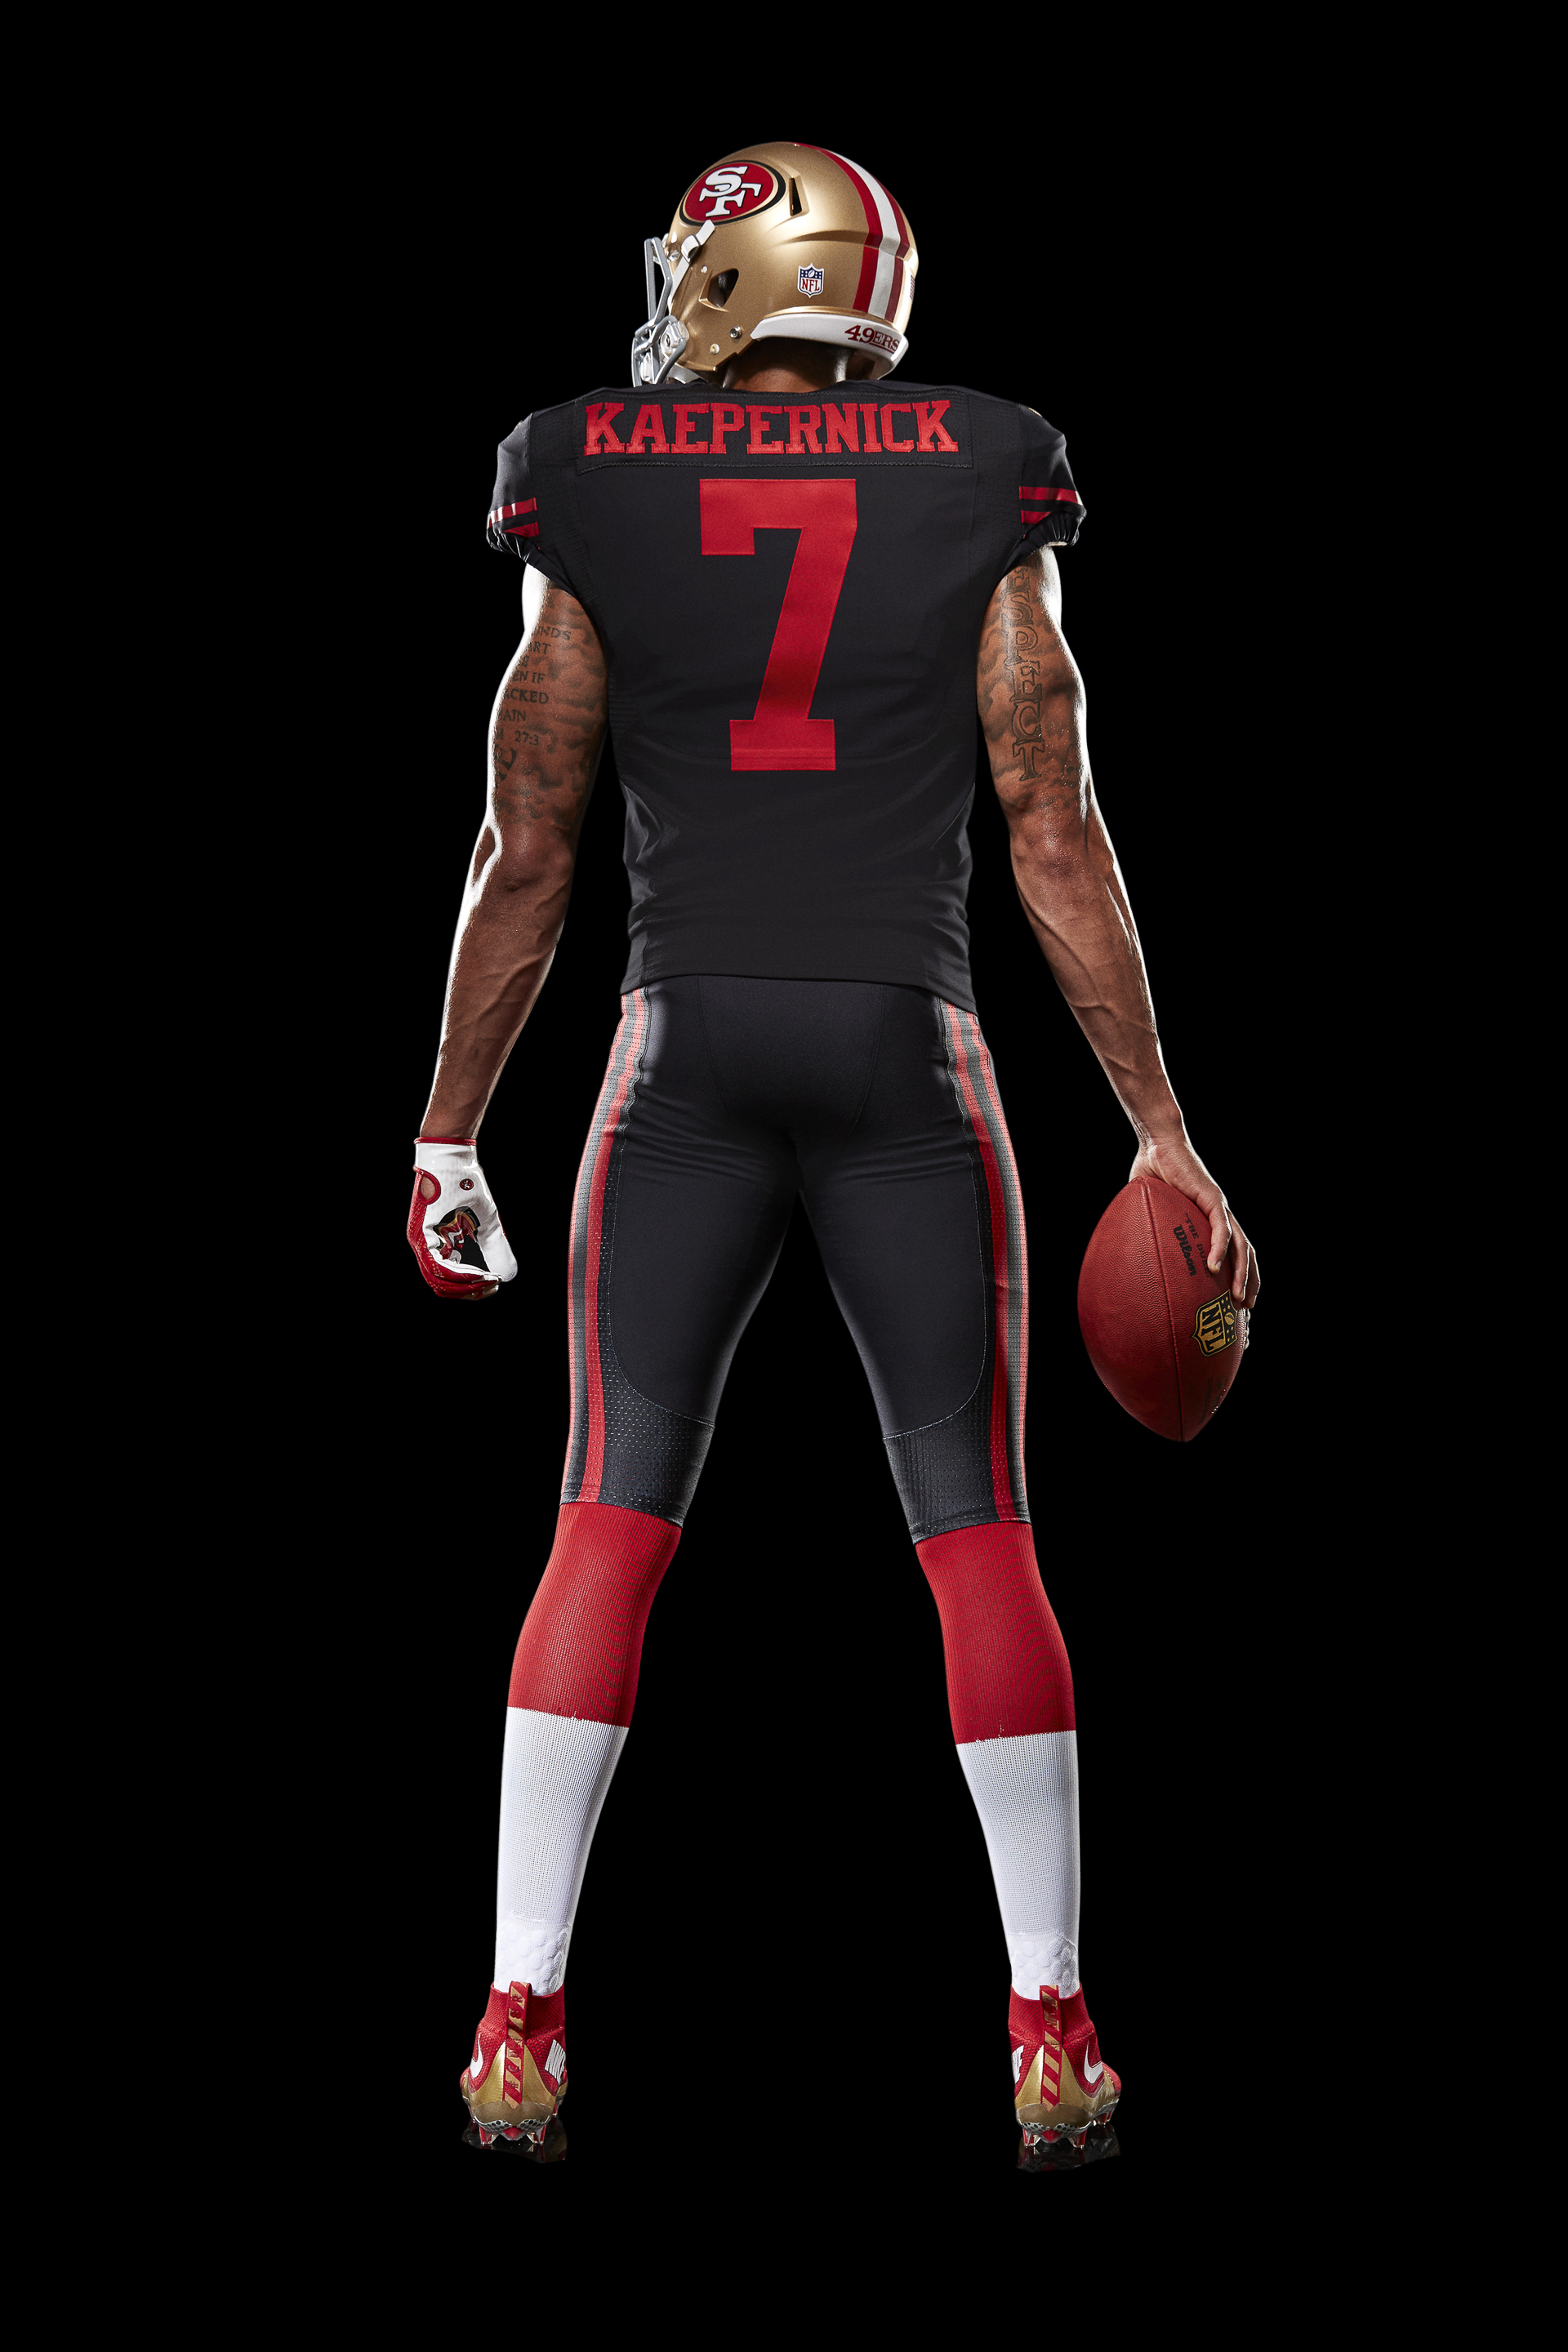 49ers officially unveil black, red and gold alternate uniform for ...